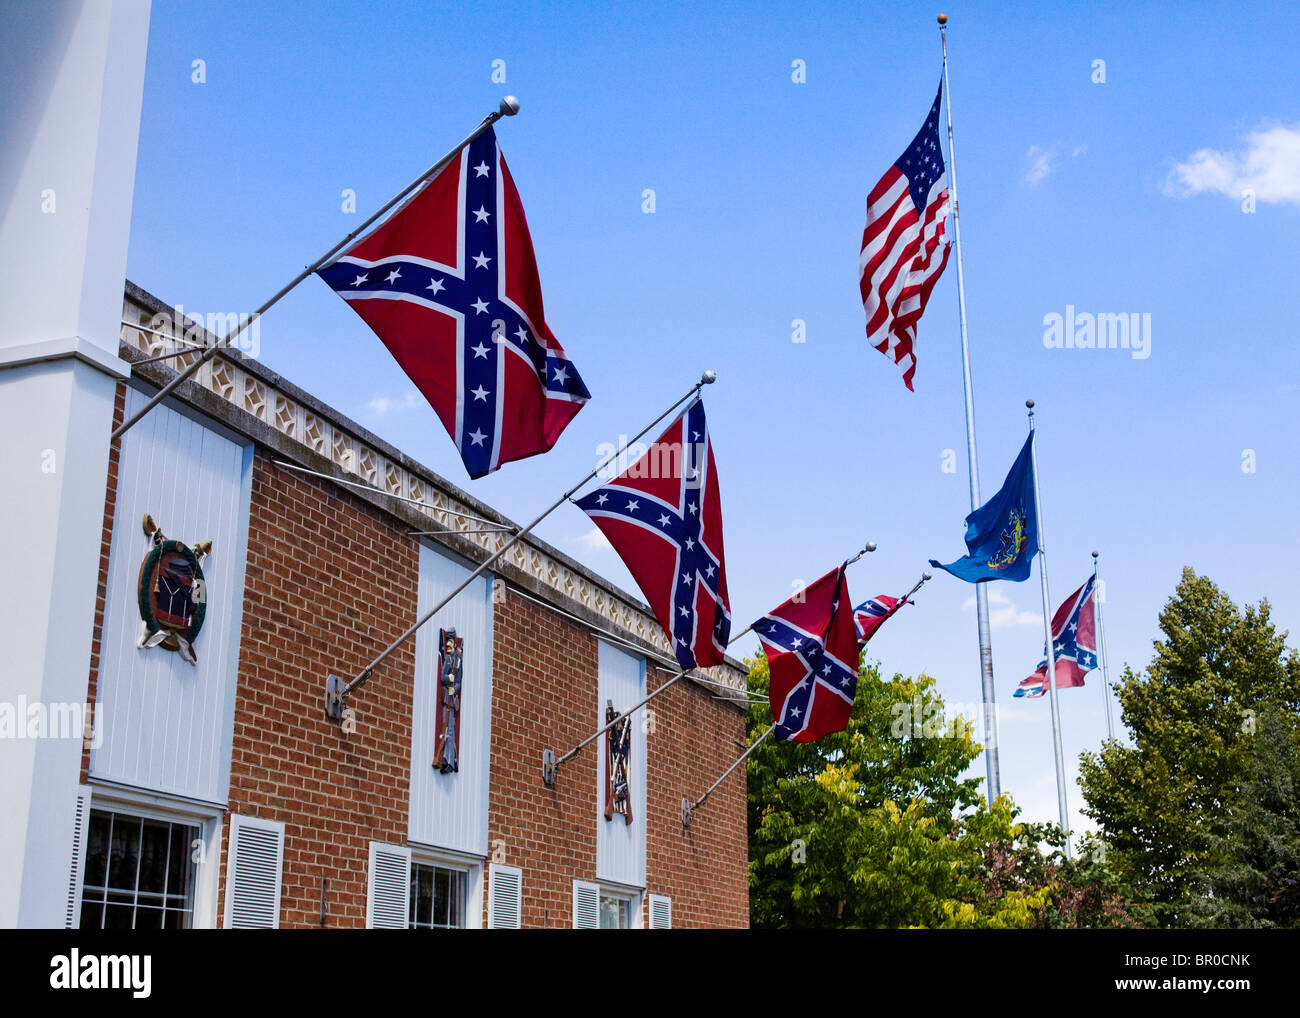 8be6e43d94 Confederate Flags Stock Photos   Confederate Flags Stock Images - Alamy